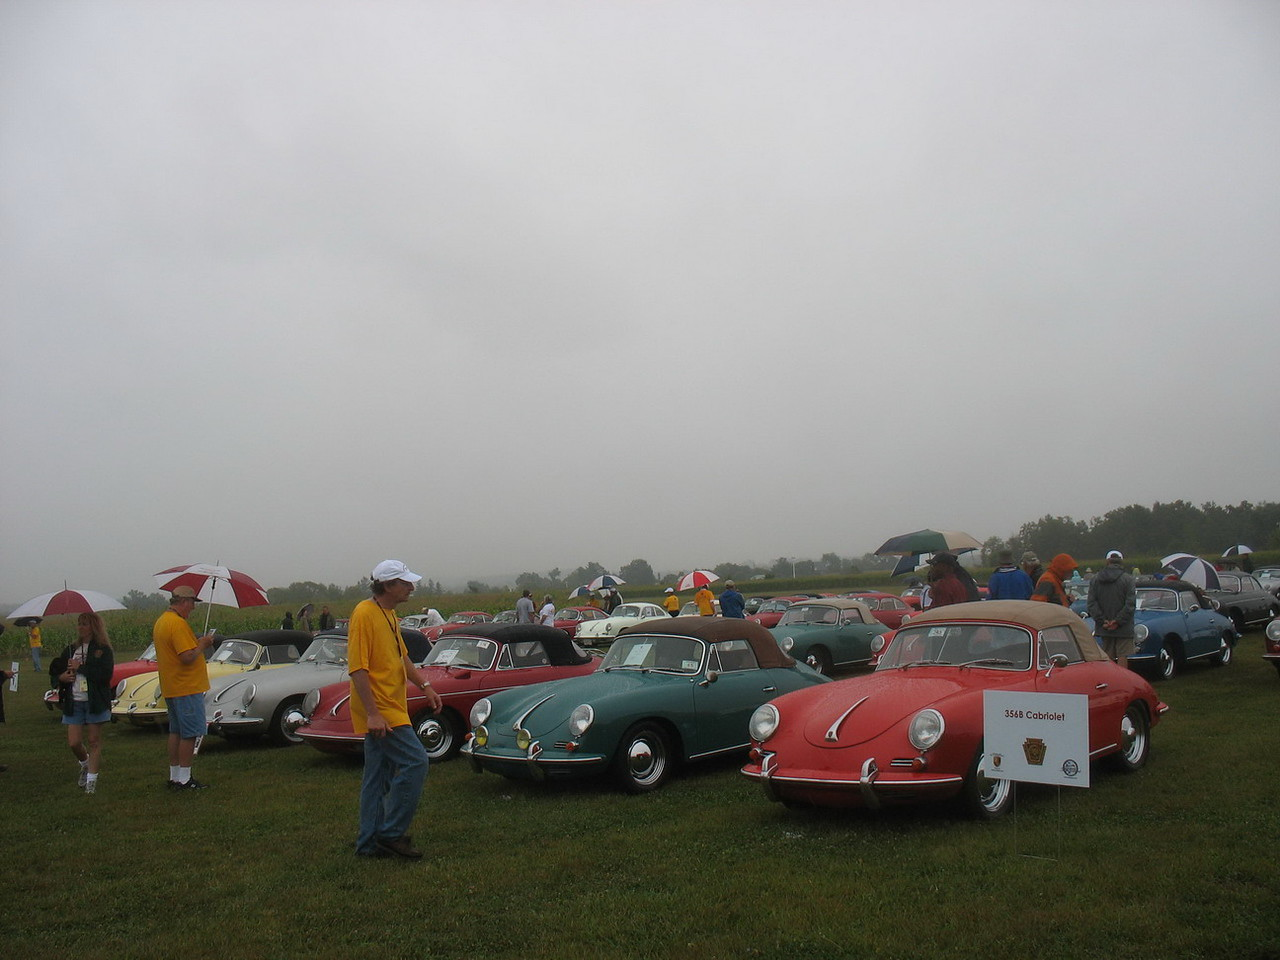 "The car show was held at the Grimes Airfield at the Golden Age Air Museum.  <a href=""http://www.goldenageair.org/"">http://www.goldenageair.org/</a><br /> <br /> By the time the cars were assembled, the effects of Tropical Storm Hanna were being felt and it was raining lightly. We tried to view all the cars, but didn't get pictures of all. This is a row of 356B Cabriolets."